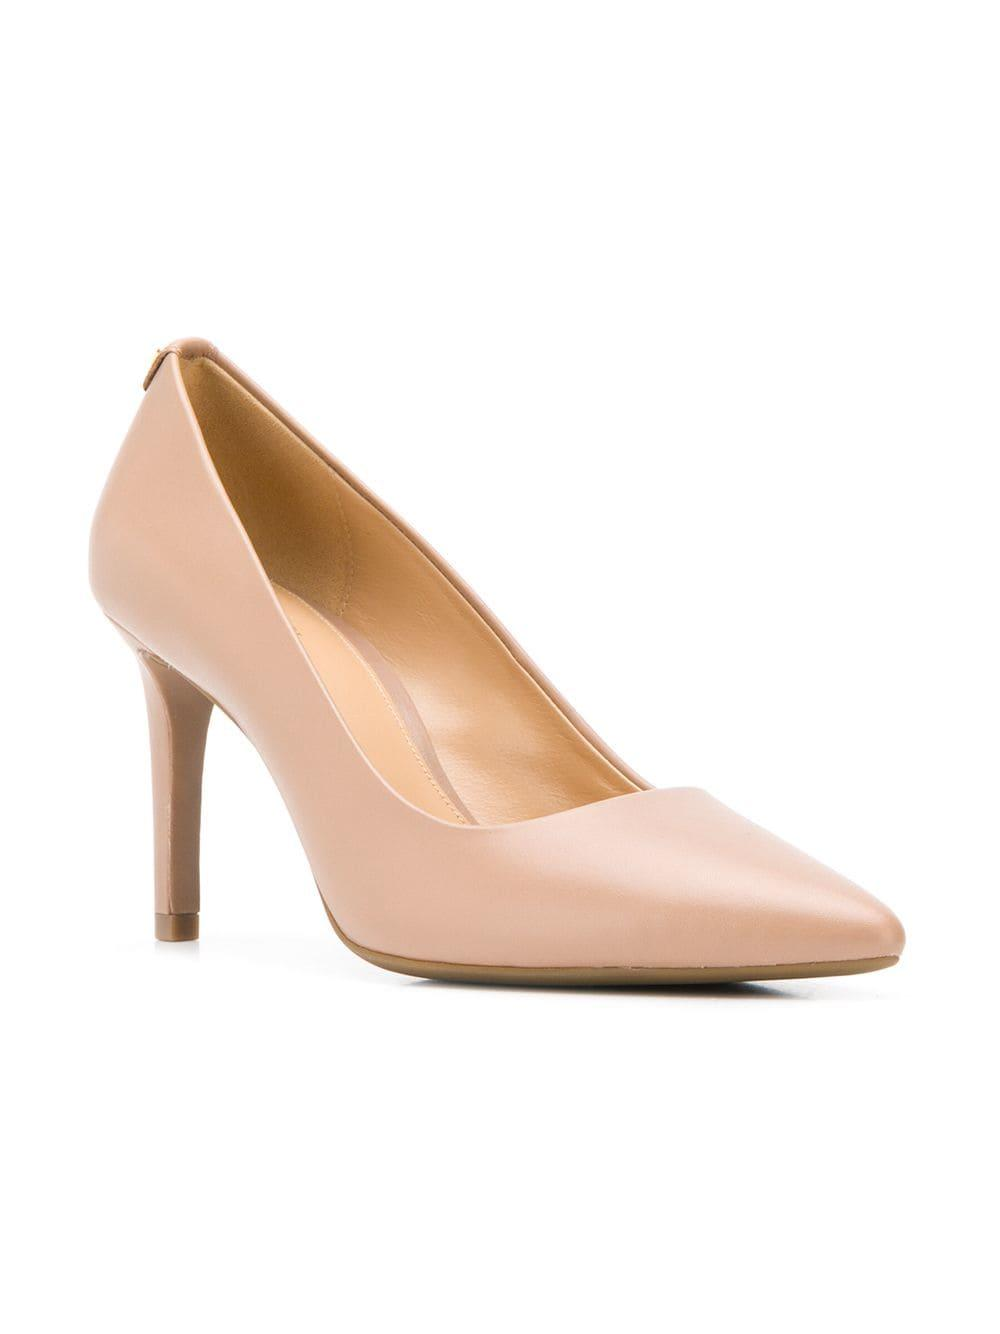 754ae16d33be Michael Kors - Multicolor Pointed Toe Pumps - Lyst. View fullscreen